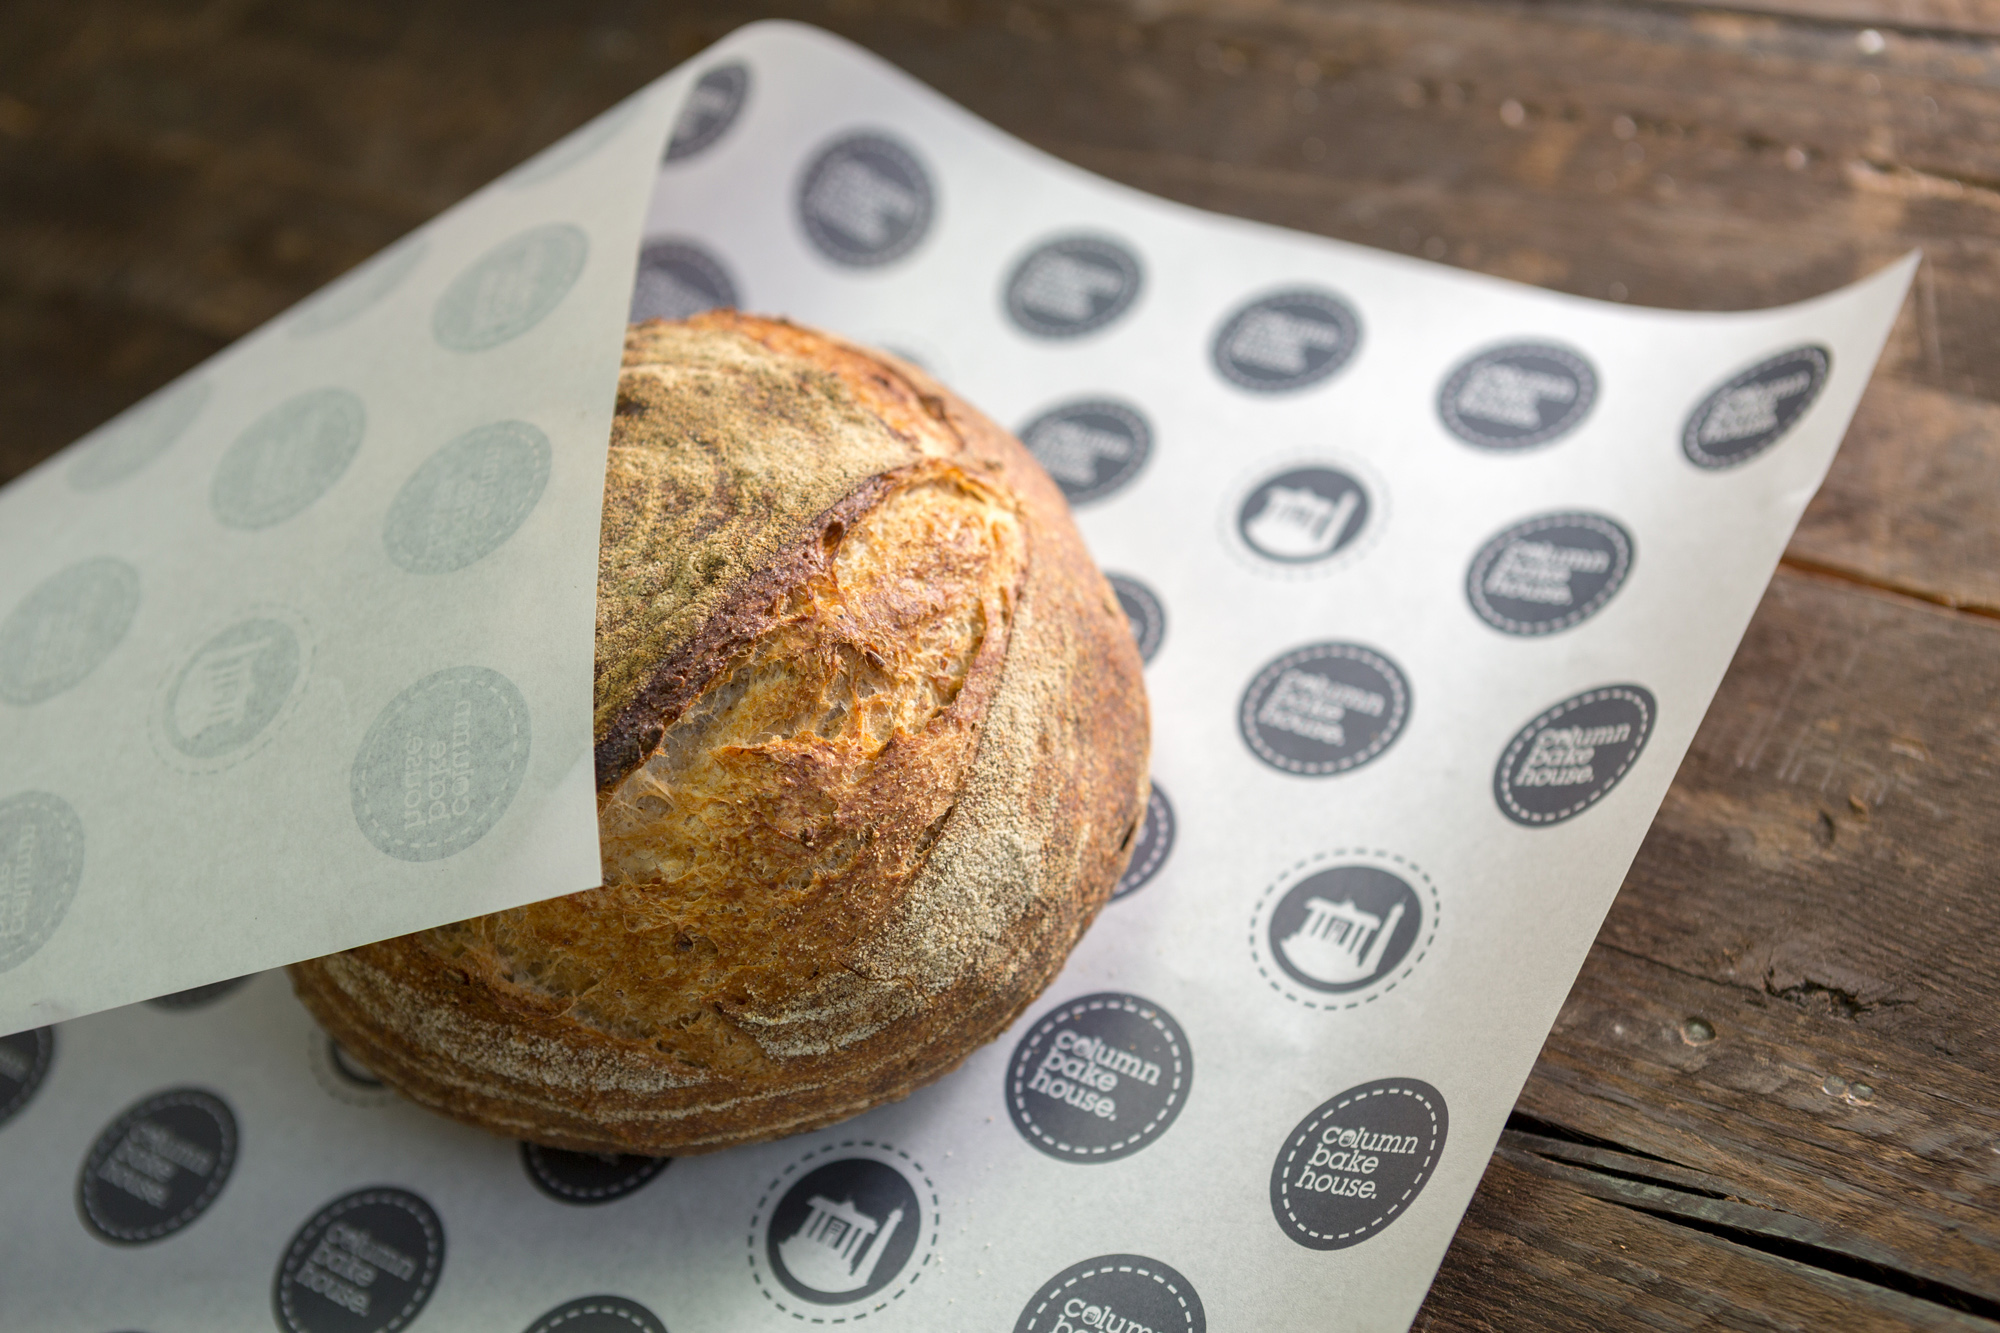 Column-bakehouse-wrapping-paper-and-bread-2017 2.jpg